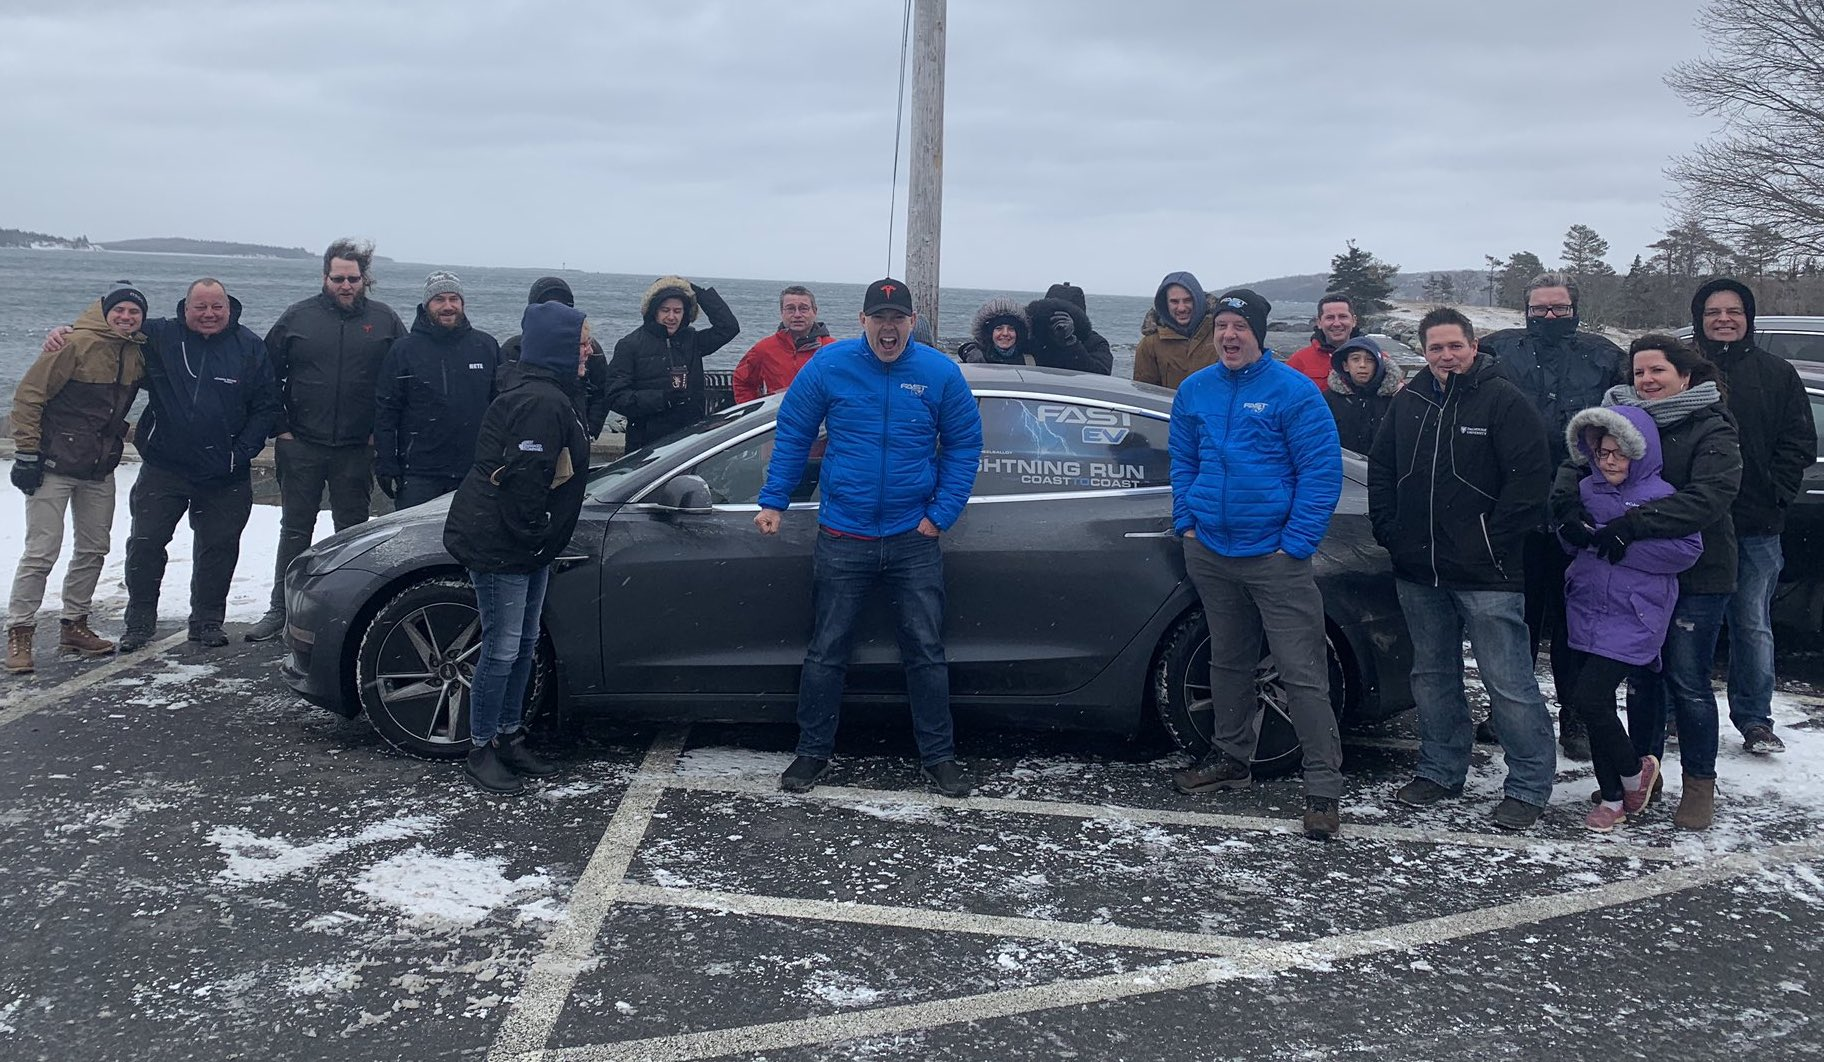 Tesla Model 3 Owners Make History With Coast-to-Coast Nonstop Canada EV Road Trip